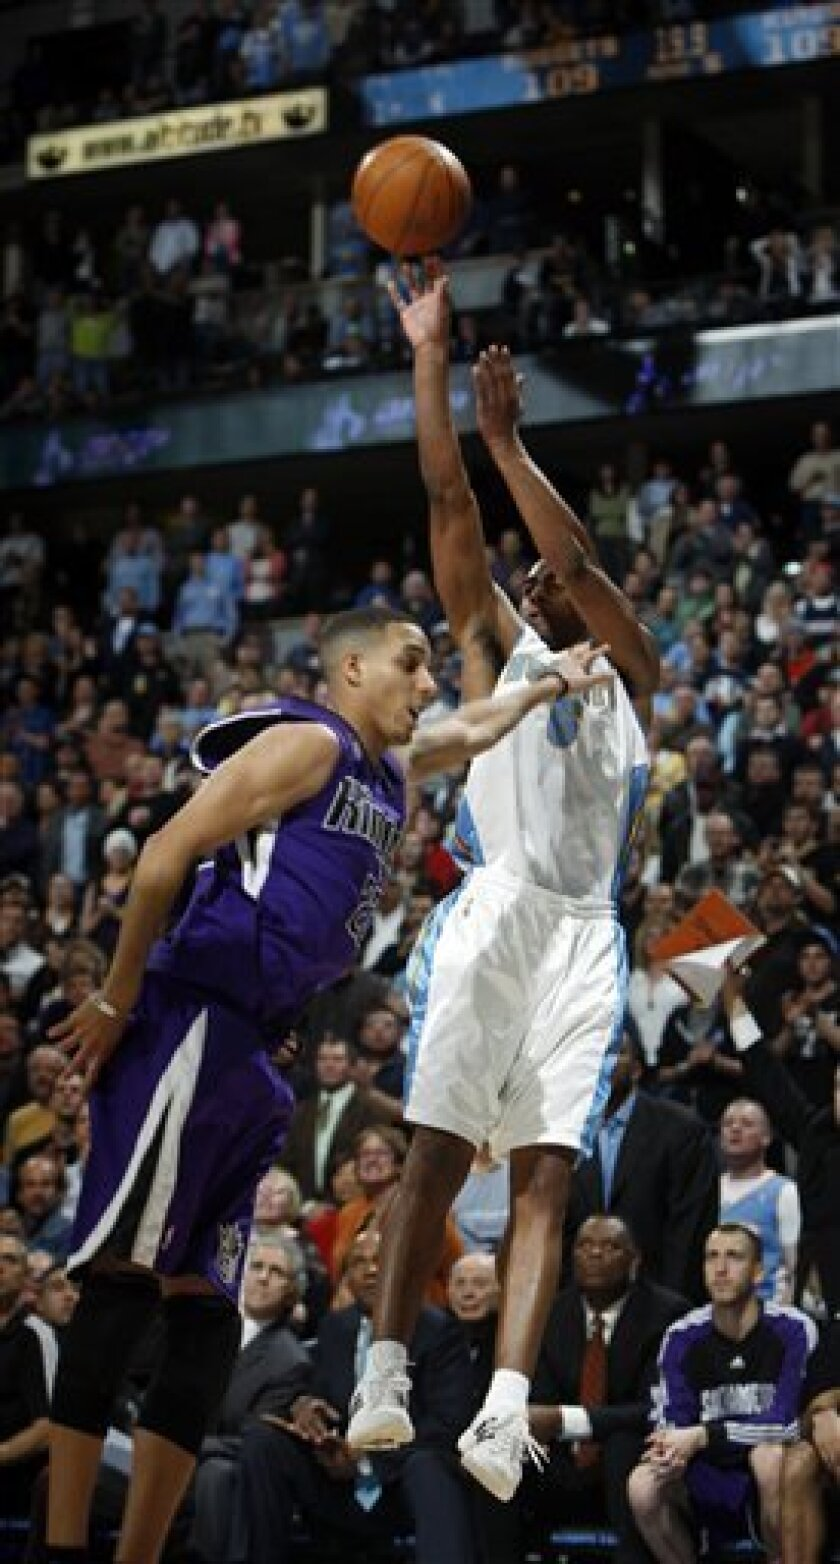 Denver Nuggets guard Arron Afflalo, back, shoots the go-ahead basket with just under 20 seconds remaining in the overtime session over Sacramento Kings guard Kevin Martin in the Nuggets' 112-109 overtime victory in an NBA basketball game in Denver on Monday, Feb. 1, 2010. (AP Photo/David Zalubowski)